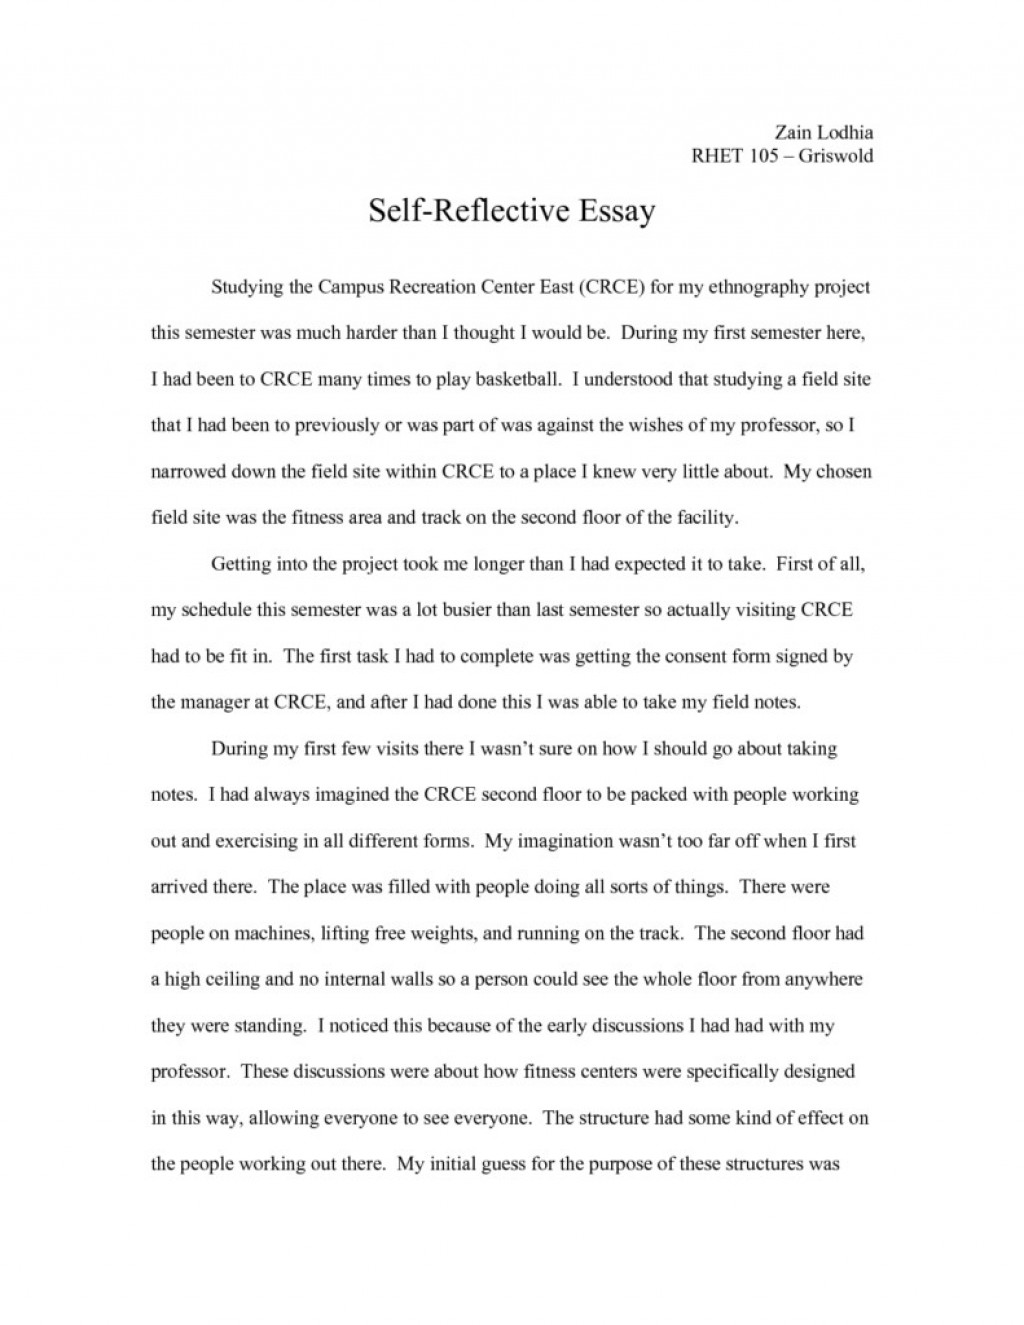 005 Writing Reflective Essay Essays Examples Smart Portray Of Self Reflection About Me Example Astounding High School Students Life Large